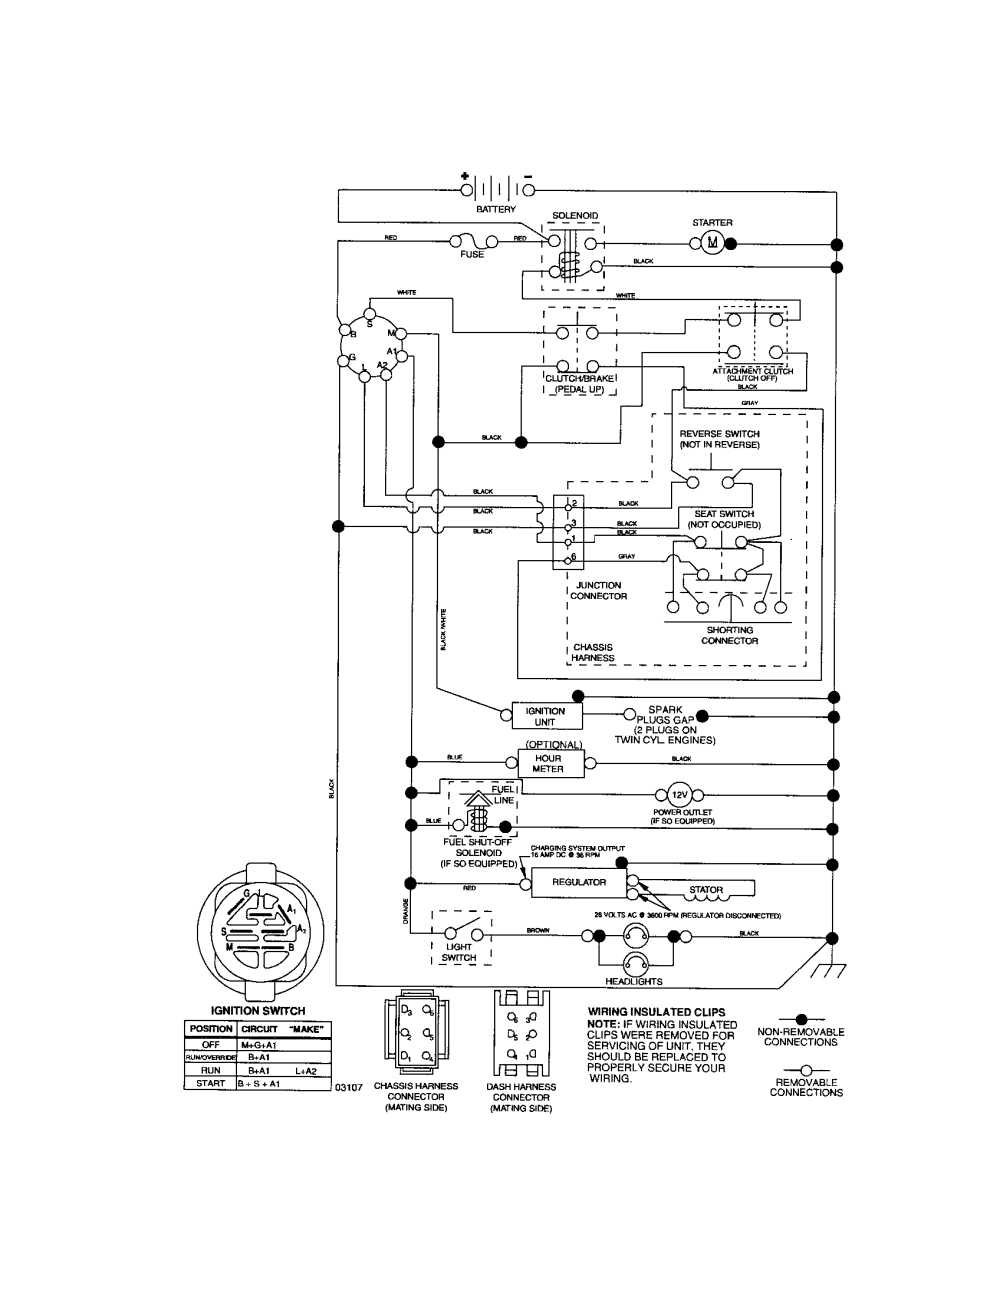 medium resolution of sears wiring diagram wiring diagram hub garage door opener wiring craftsman model 917287261 lawn tractor